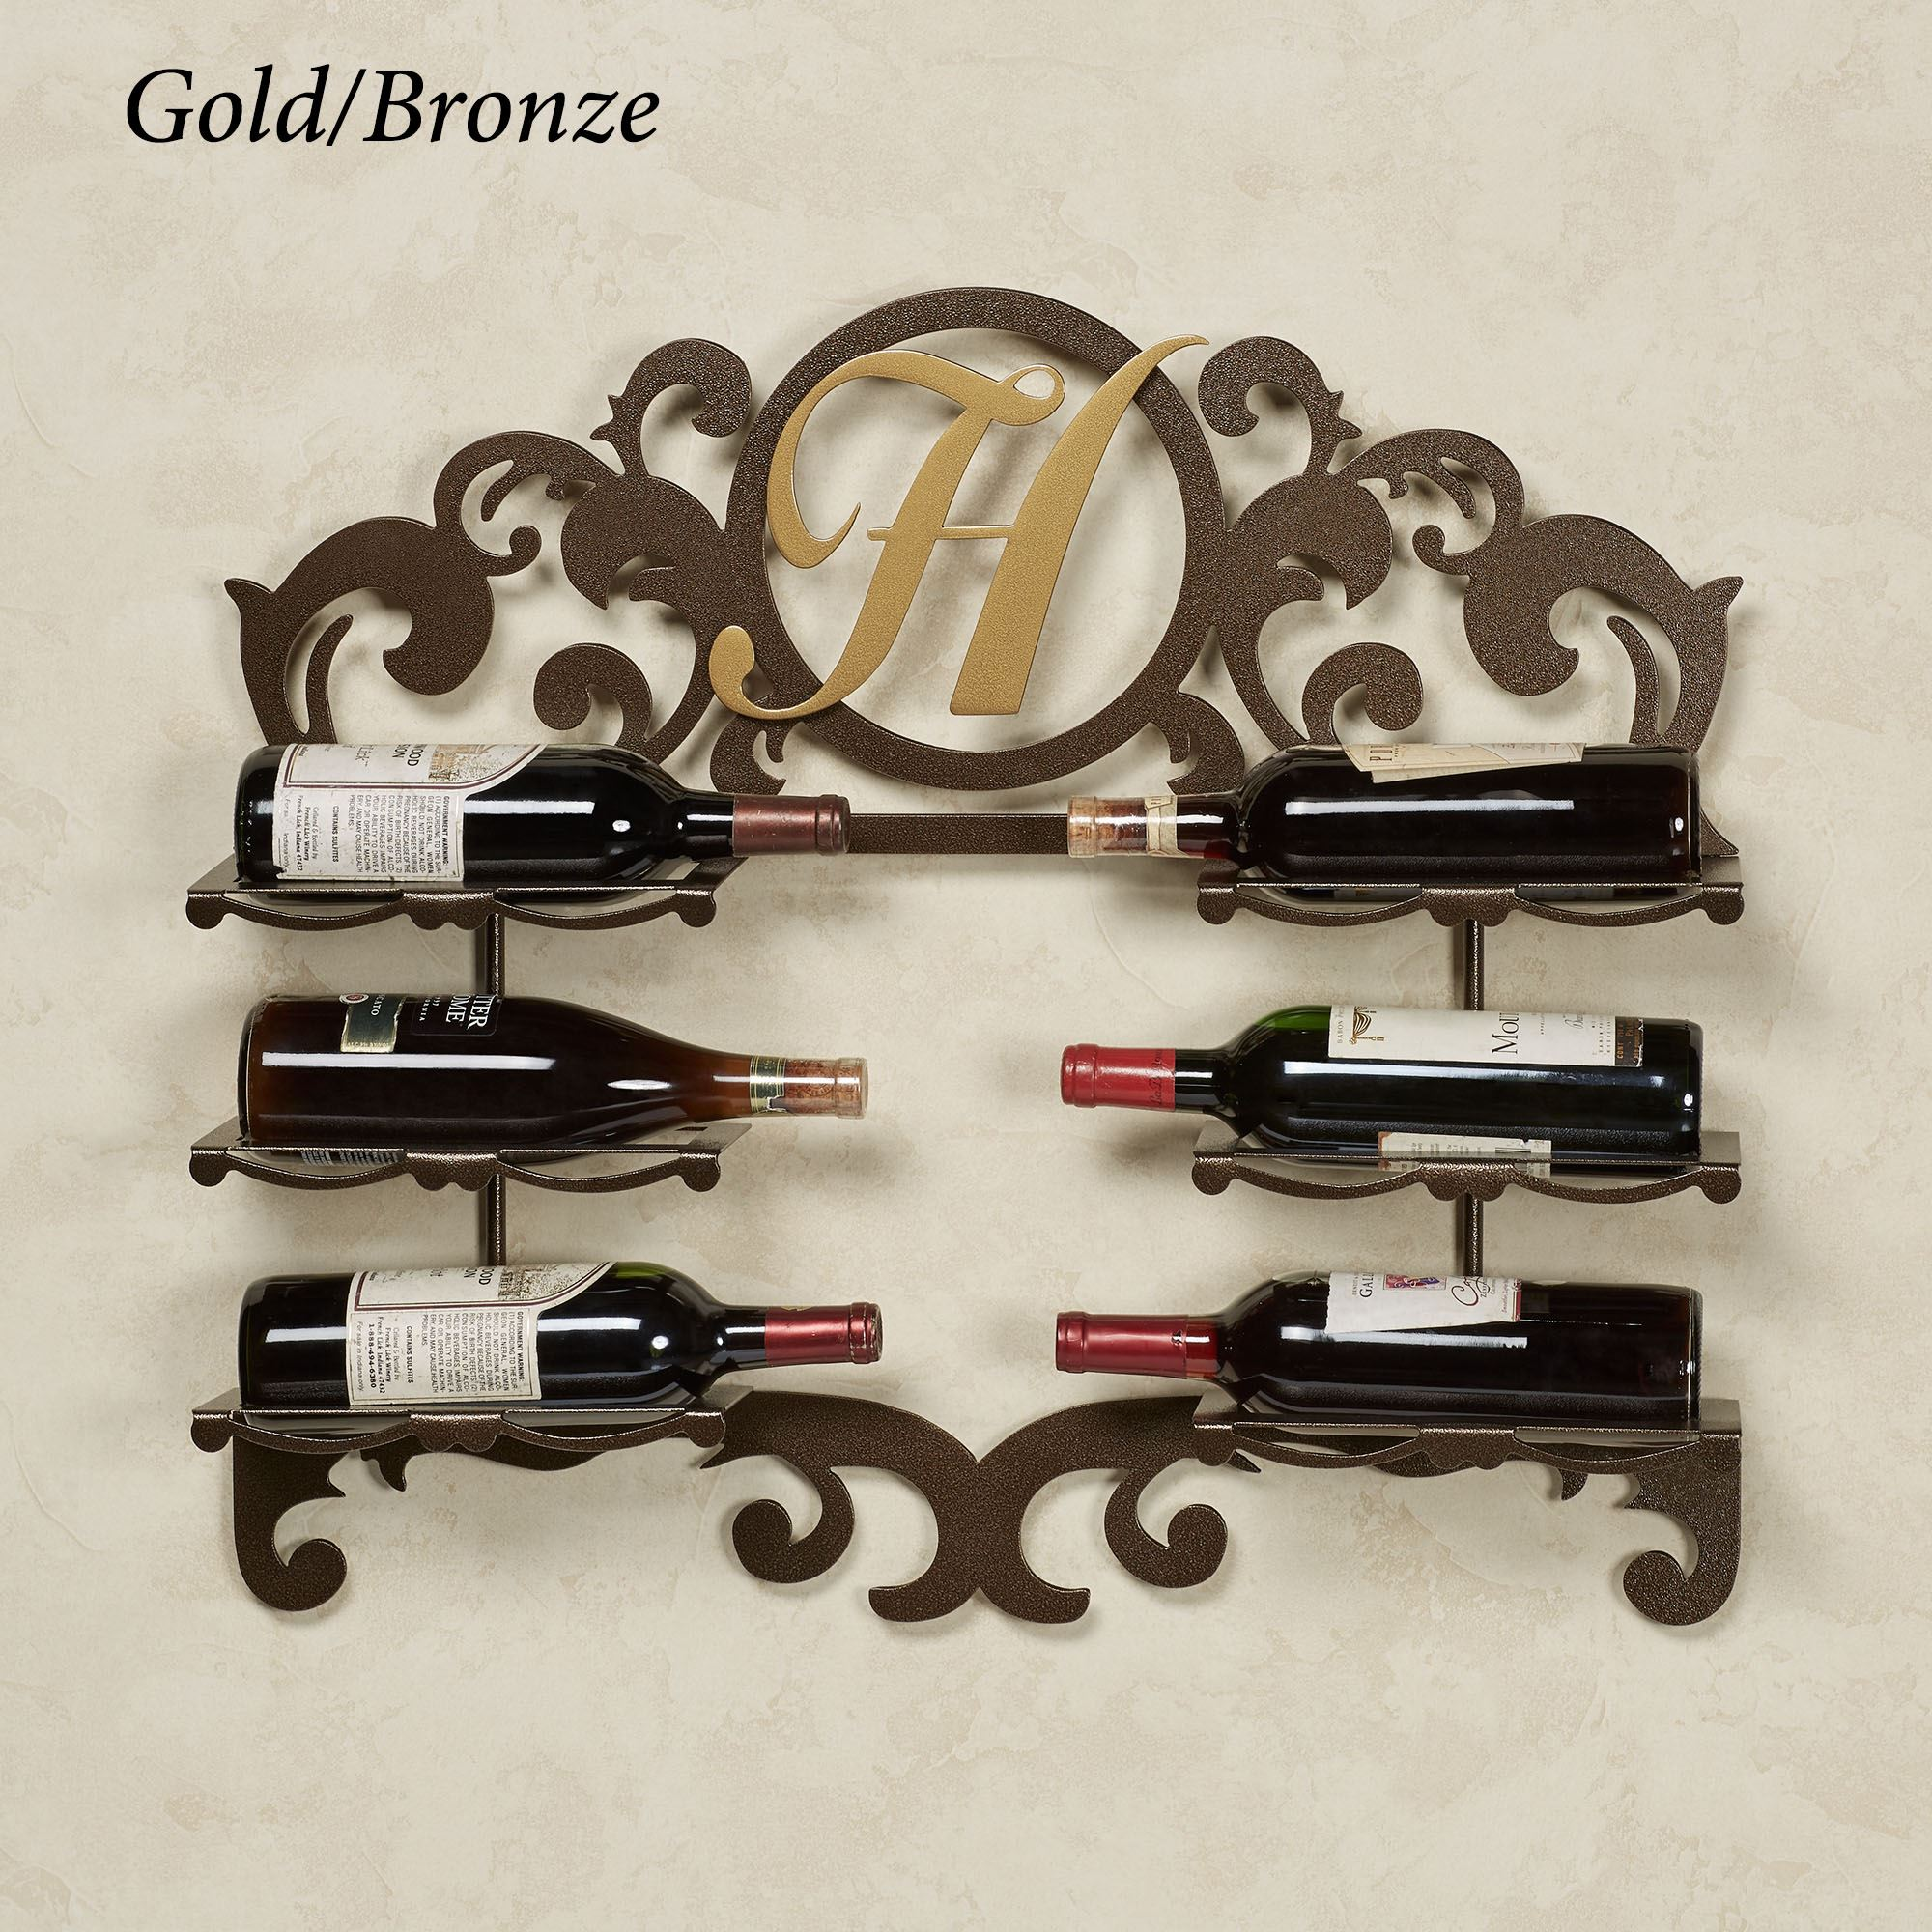 San Martin Monogram Personalized Wall Wine Bottle Rack